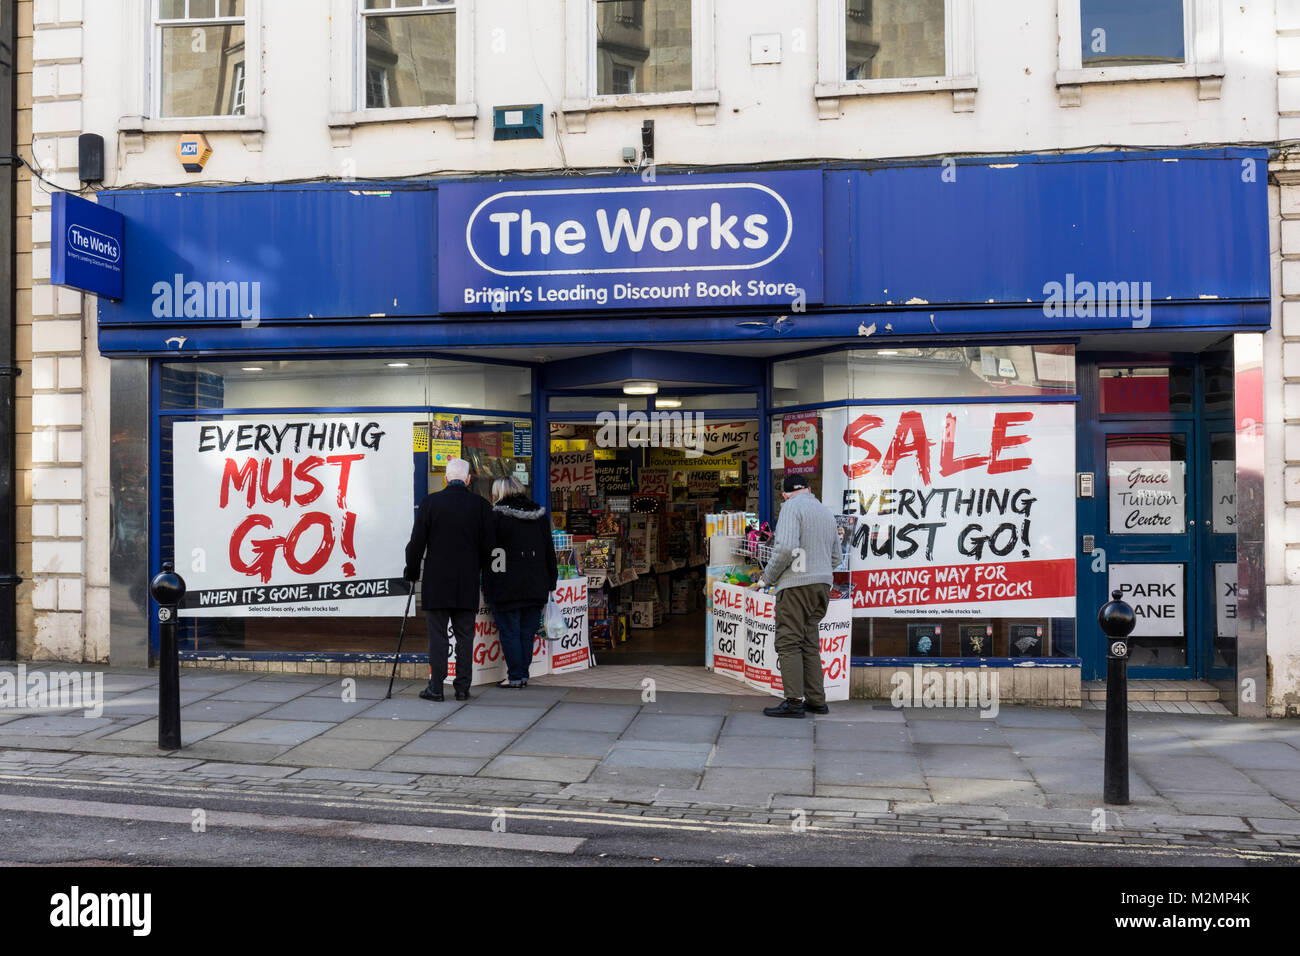 The Works Book Store, Chippenham, Wiltshire, England - Stock Image